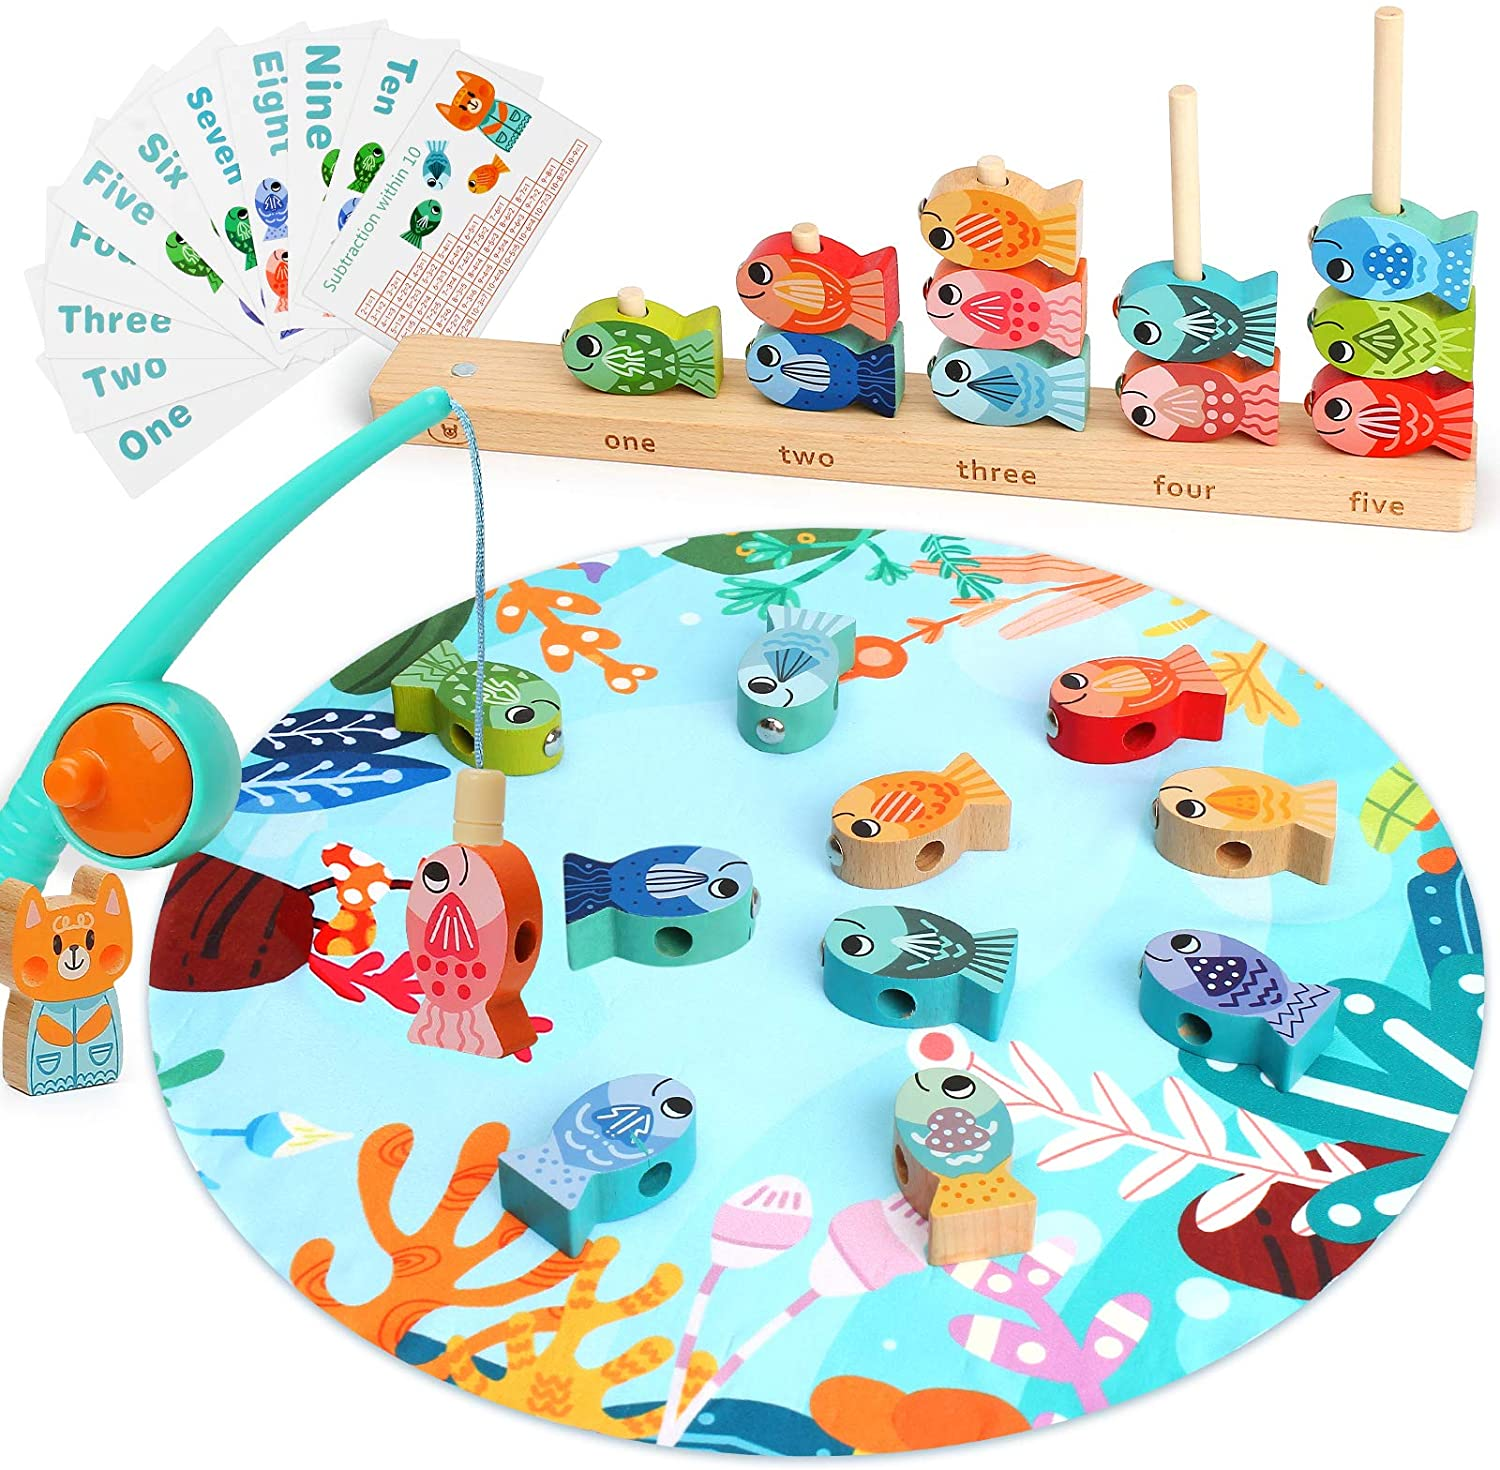 LUKAT Wooden Magnetic Fishing Game, Toys for 3 4 5 6 Year Old Girl Boy, Alphabet Fish Catching Counting Preschool Board Games, Early Math Learning Educational Toys for Kids